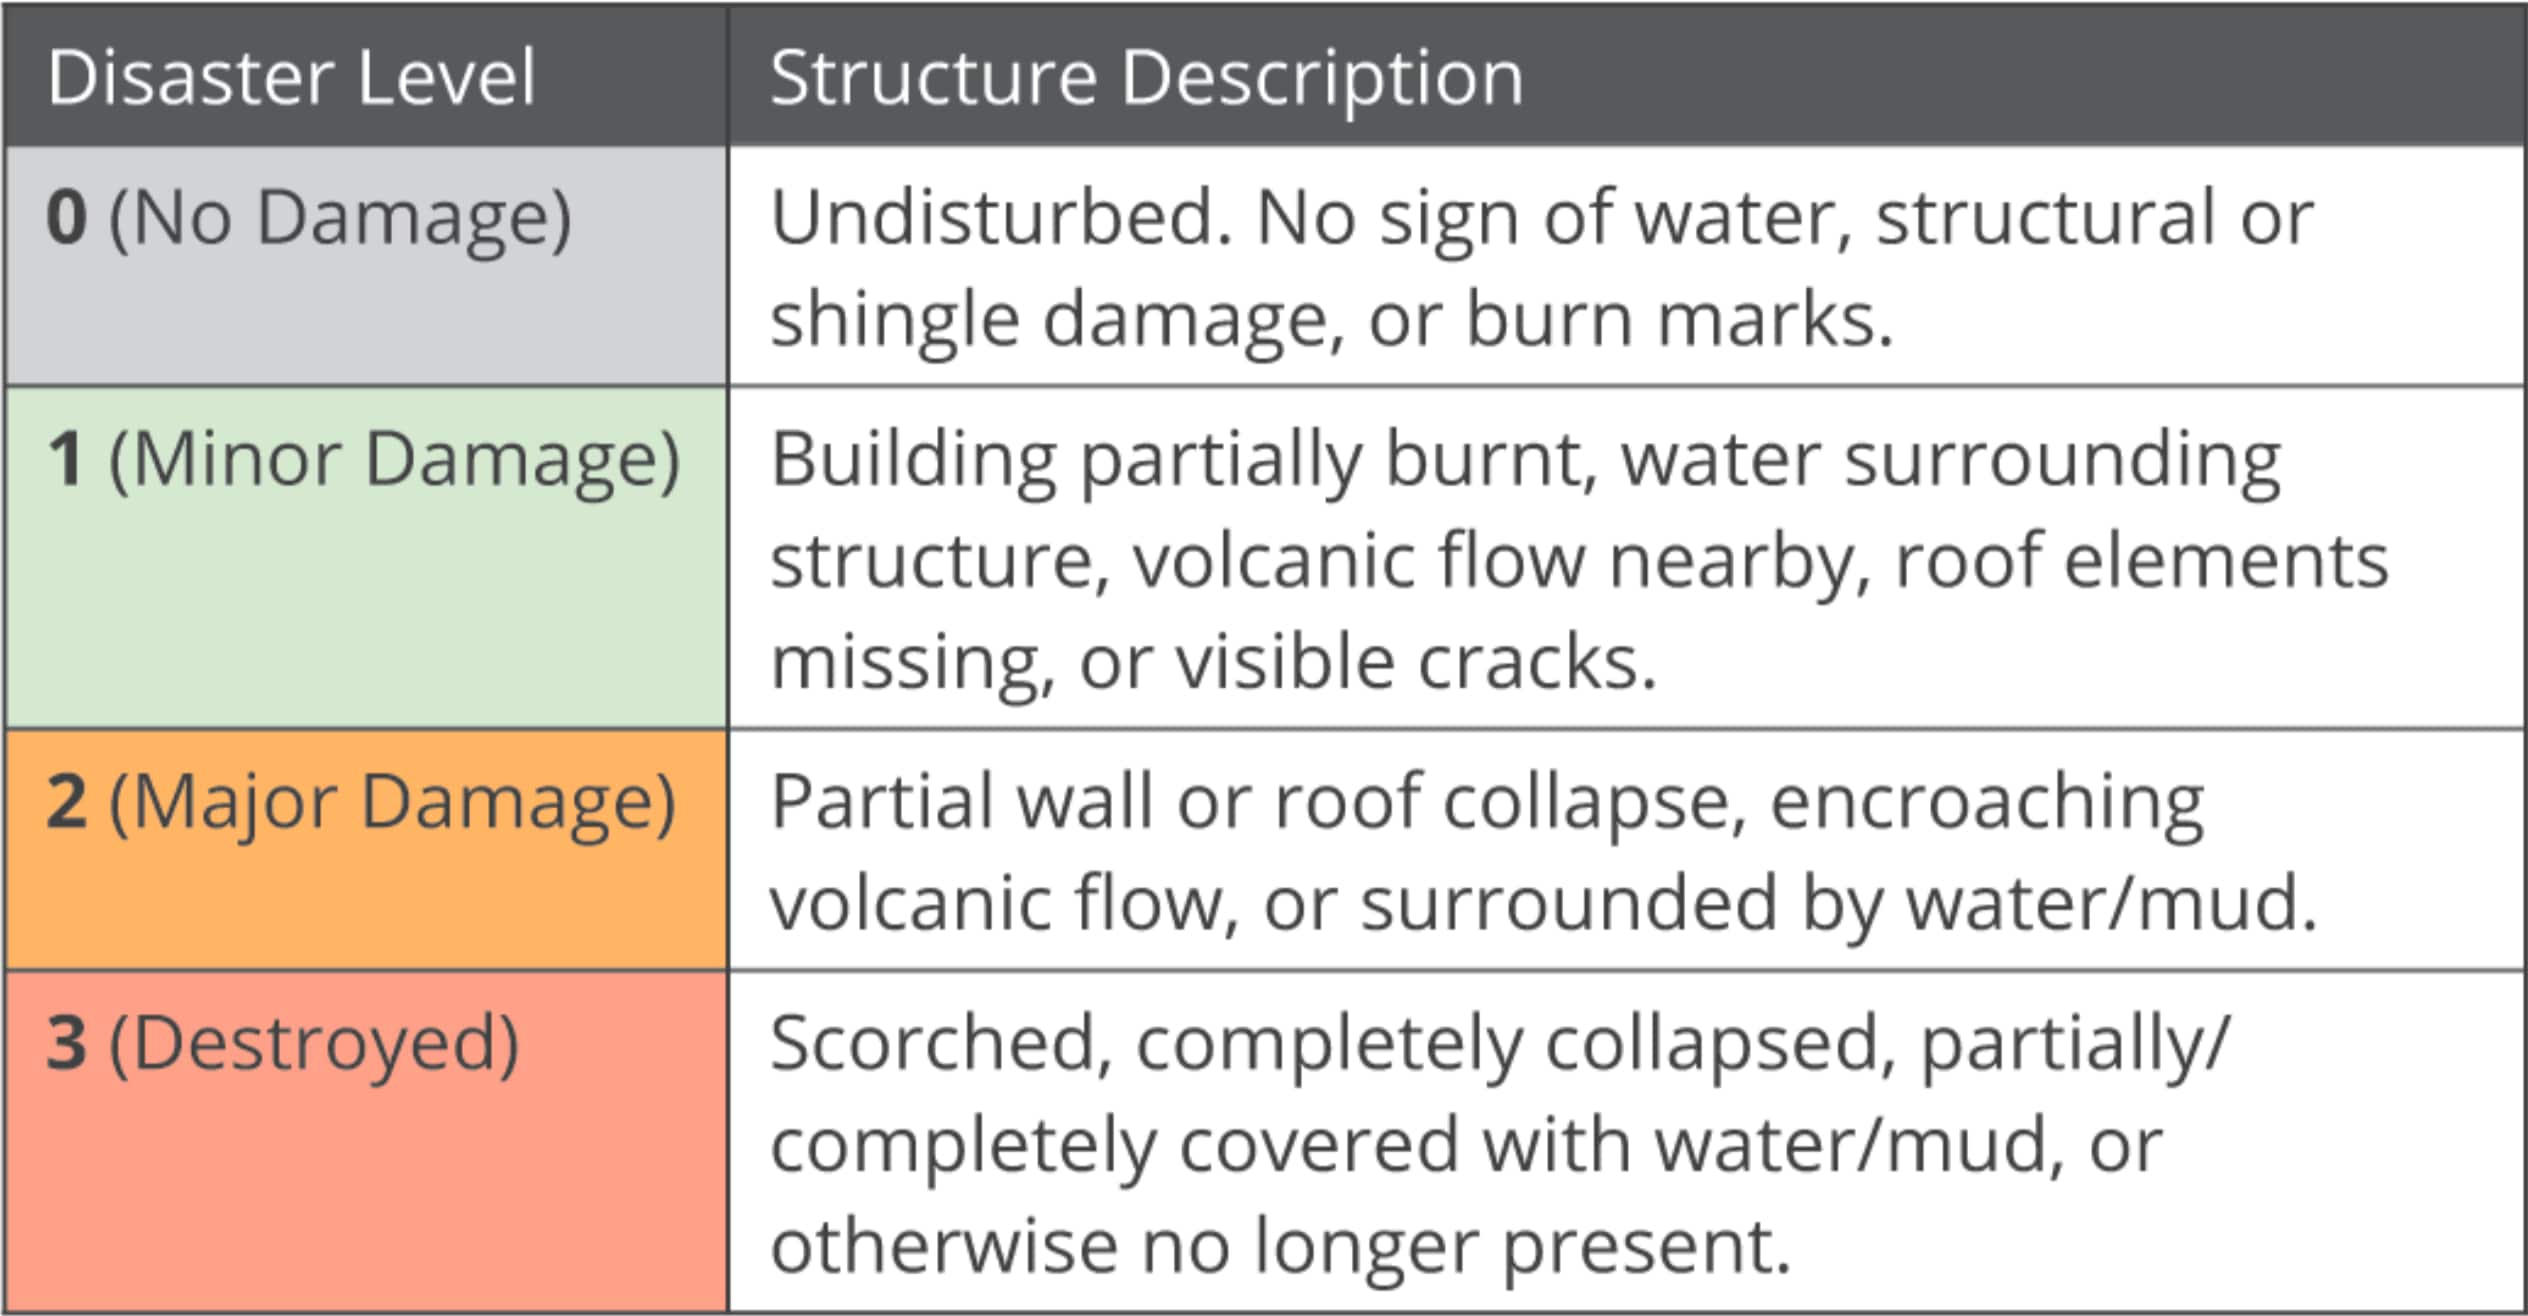 In the post-disaster images, each building is assigned a class label based on how badly it was damaged.